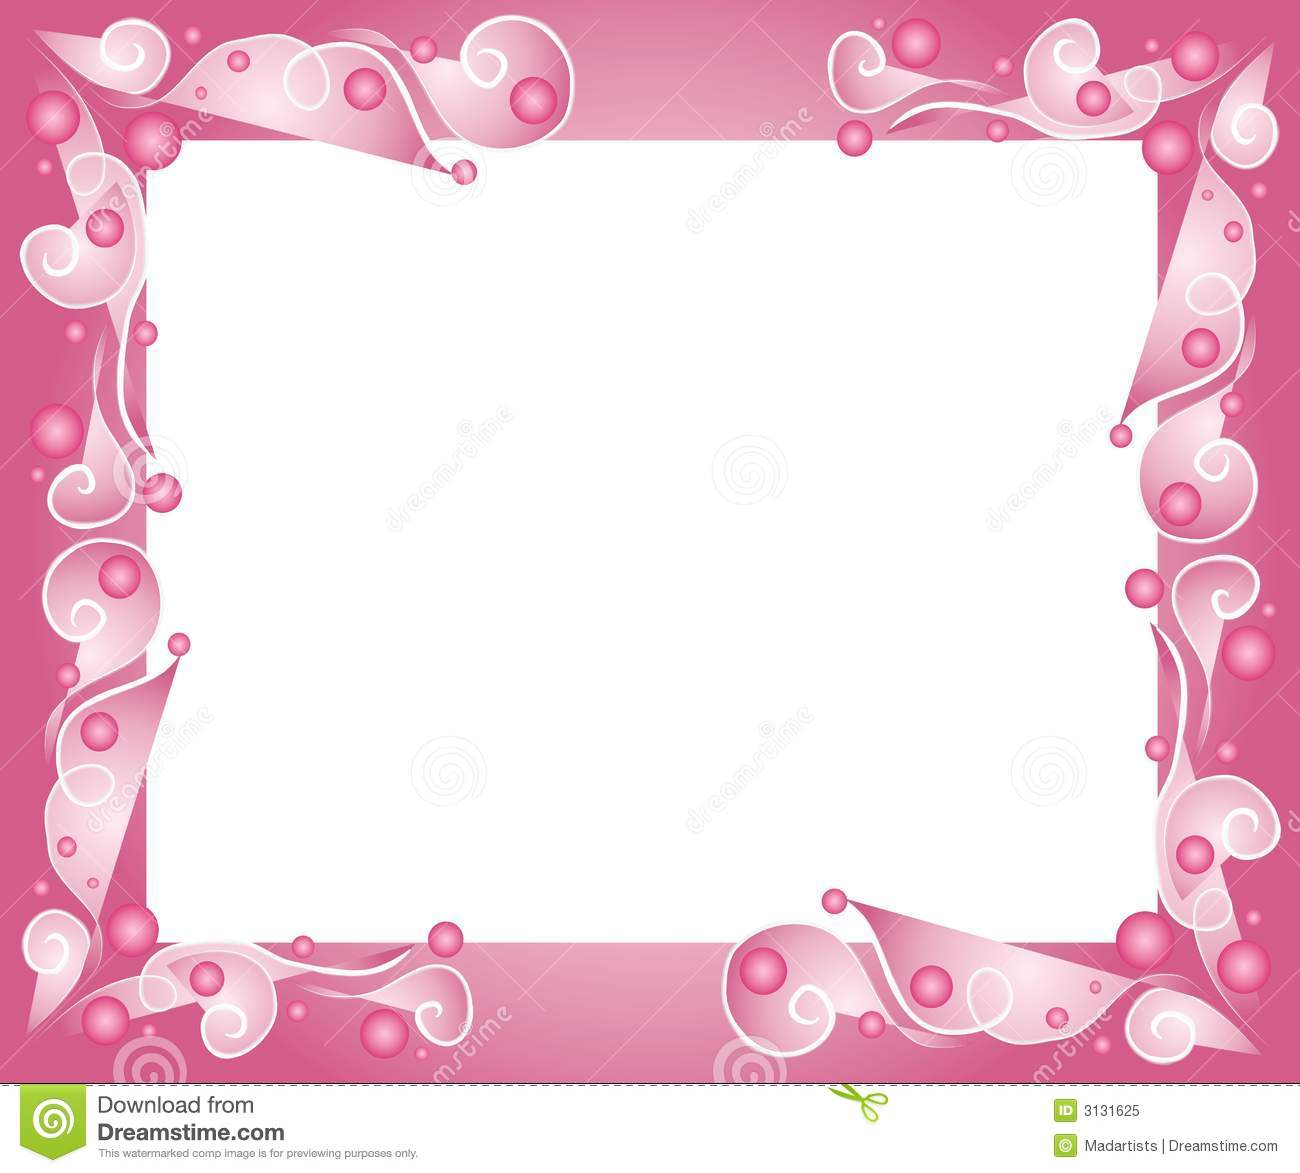 Decorative Pink Frame Border Stock Illustration